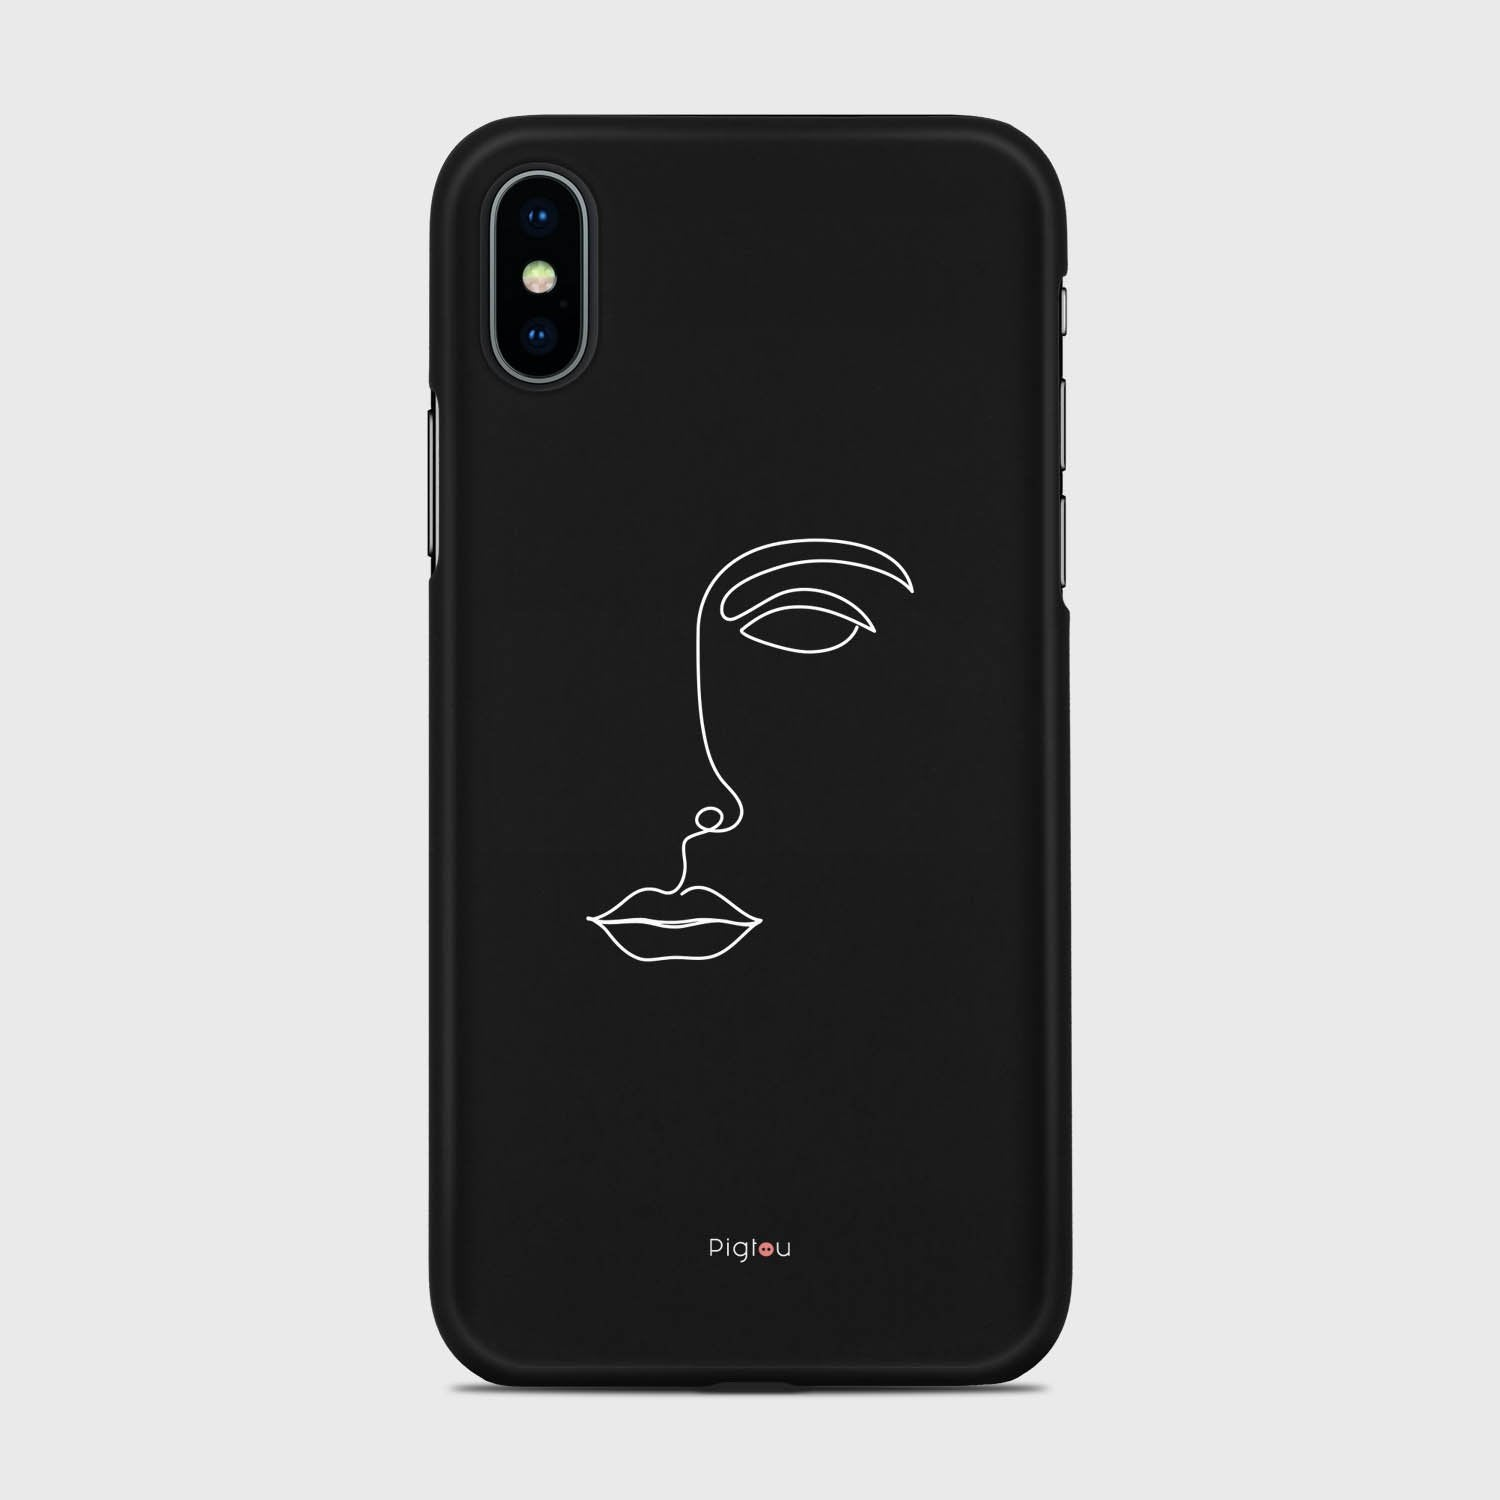 SILHOUETTE FACE iPhone 11 Pro cases | Pigtou